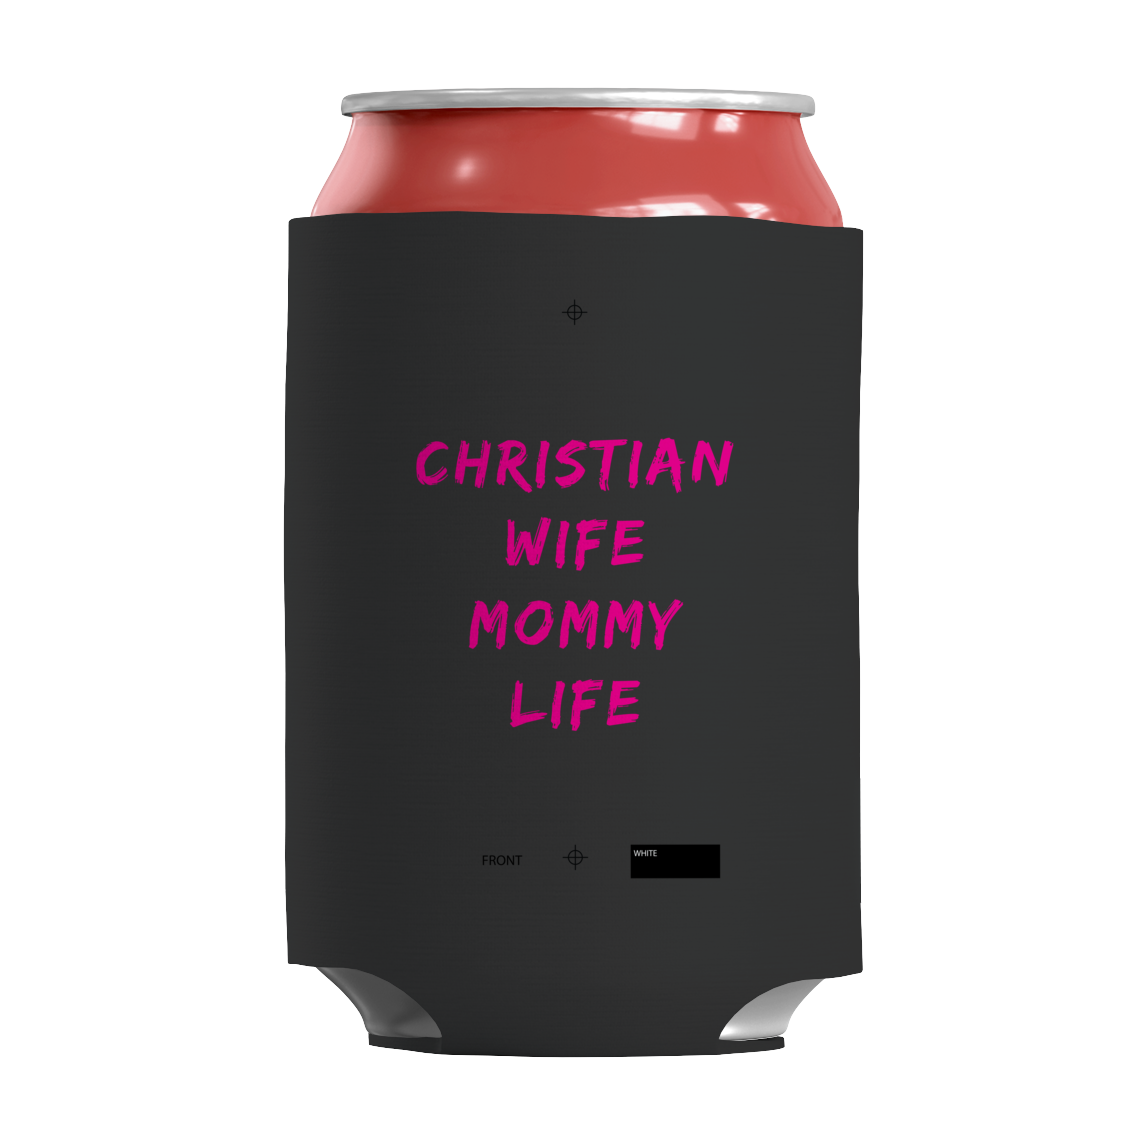 Christian Wife Mommy Life